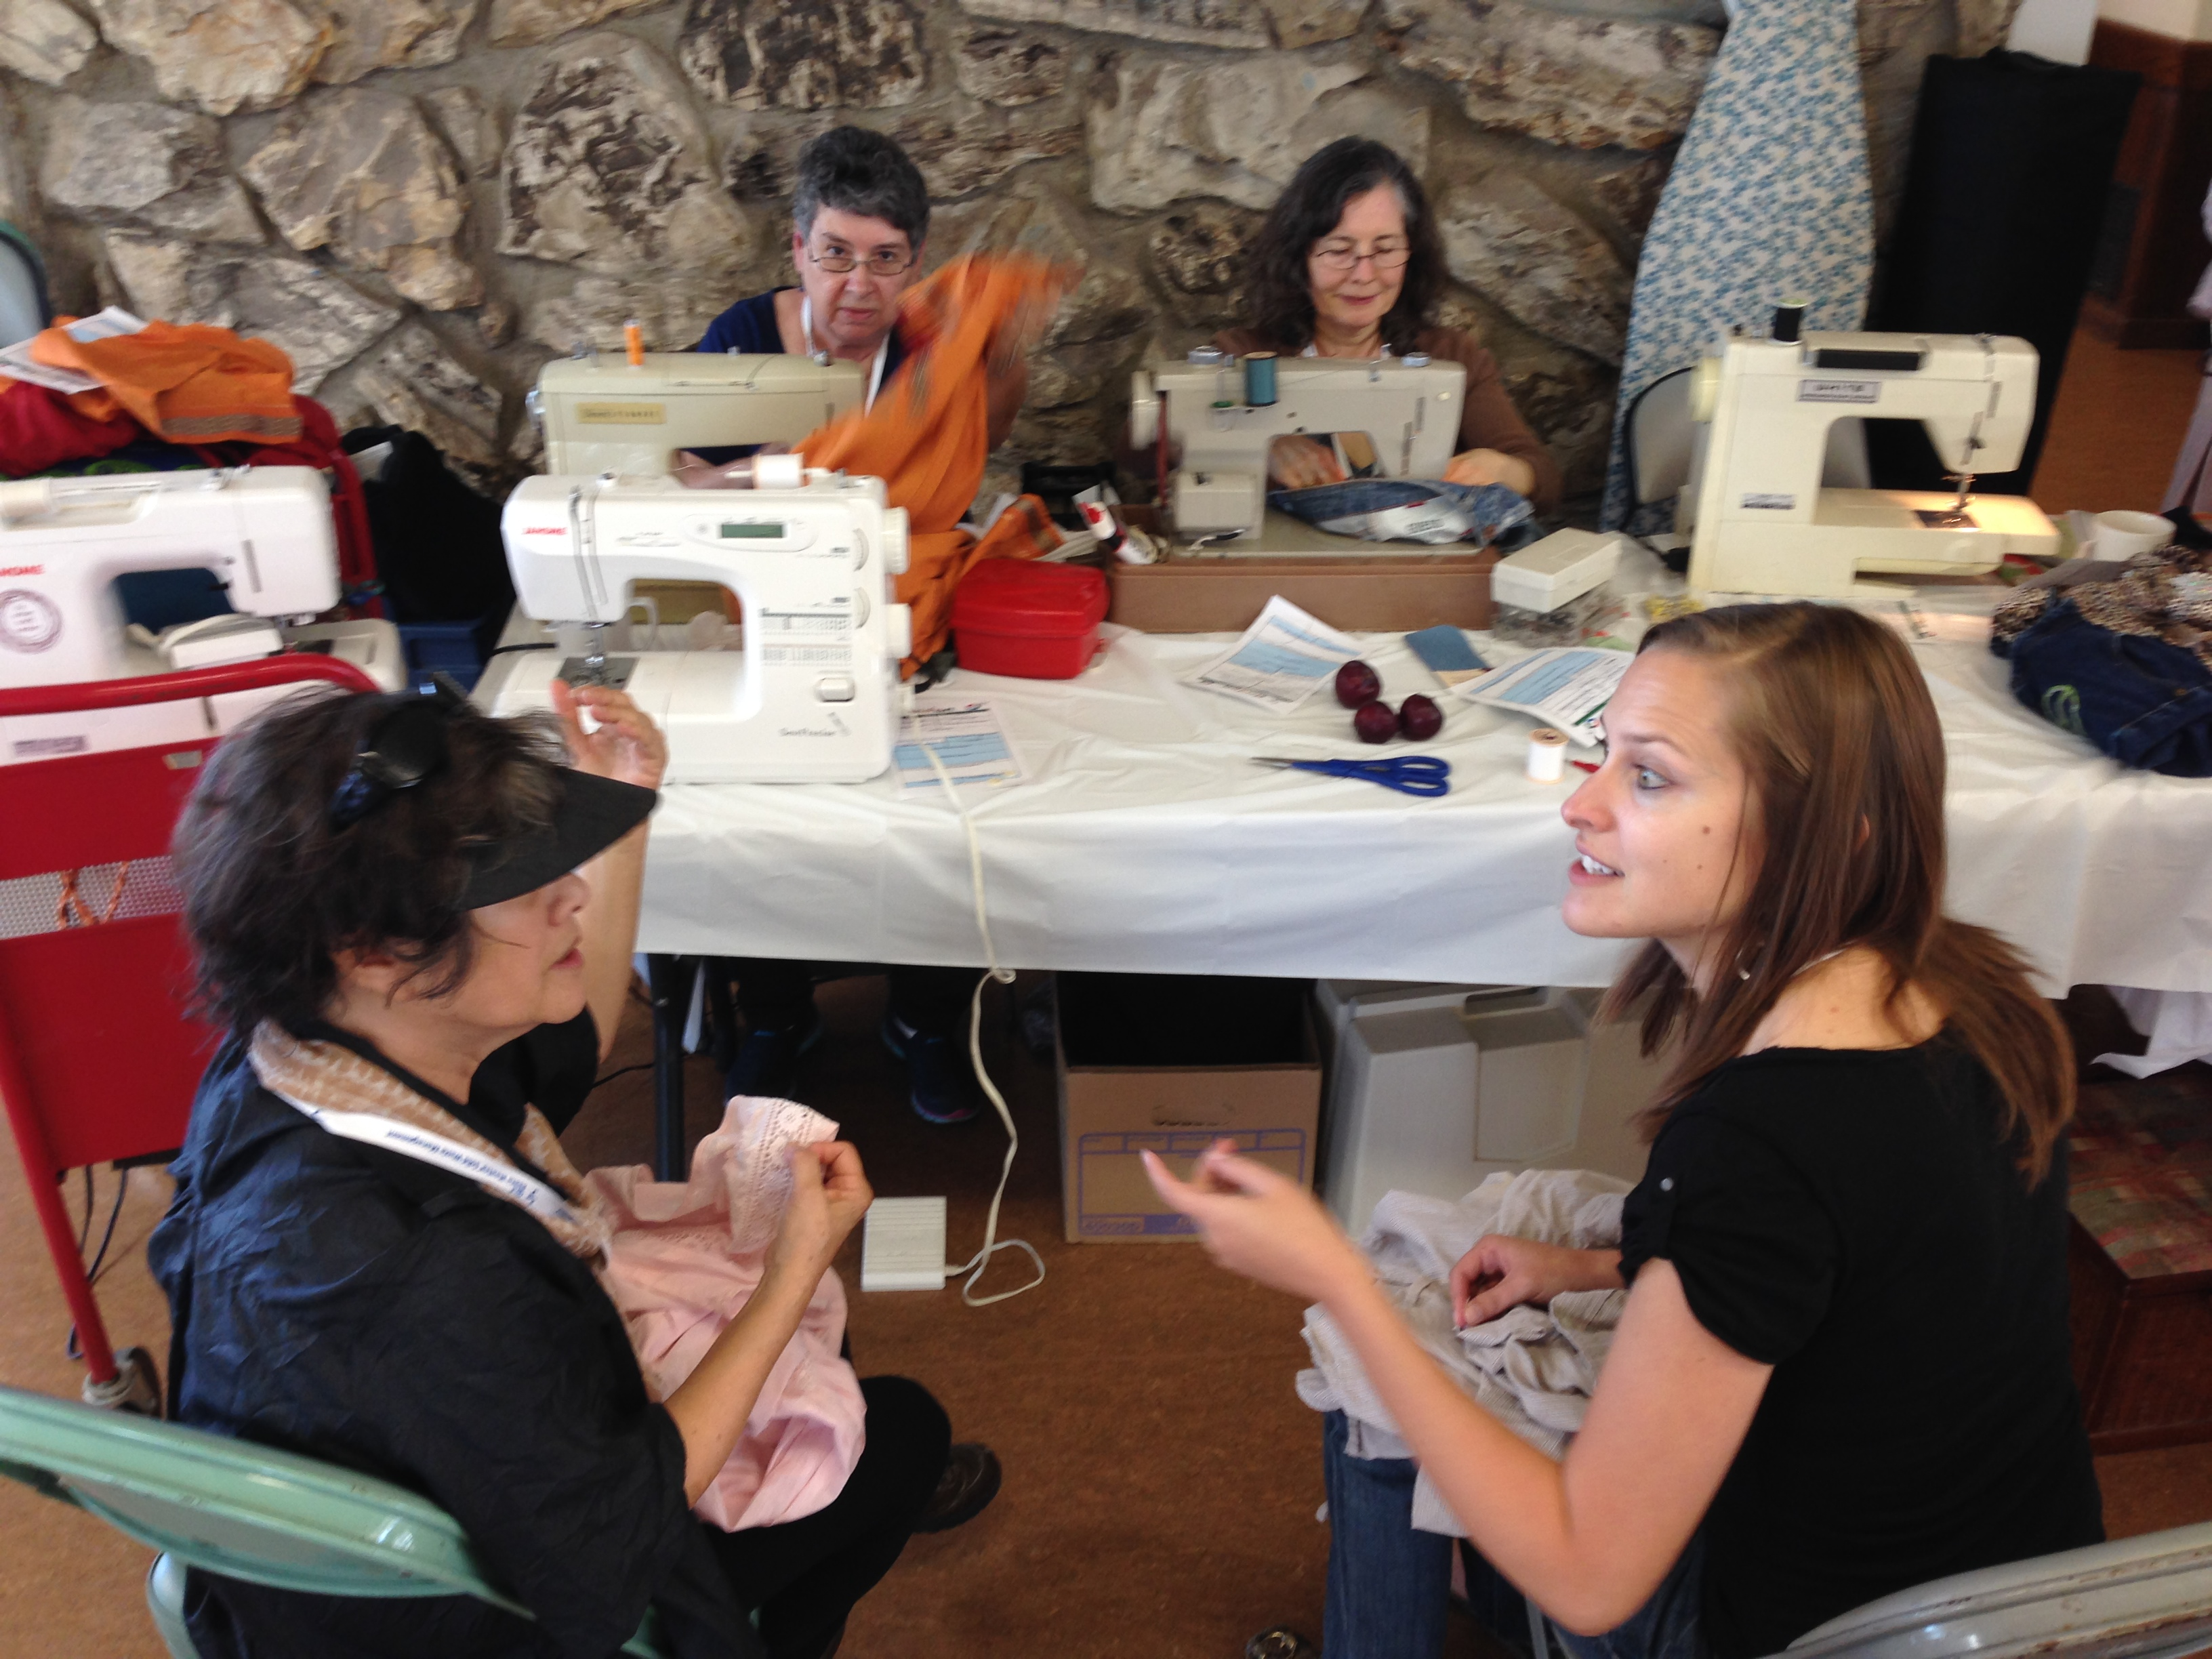 Sewing at Repair Cafe